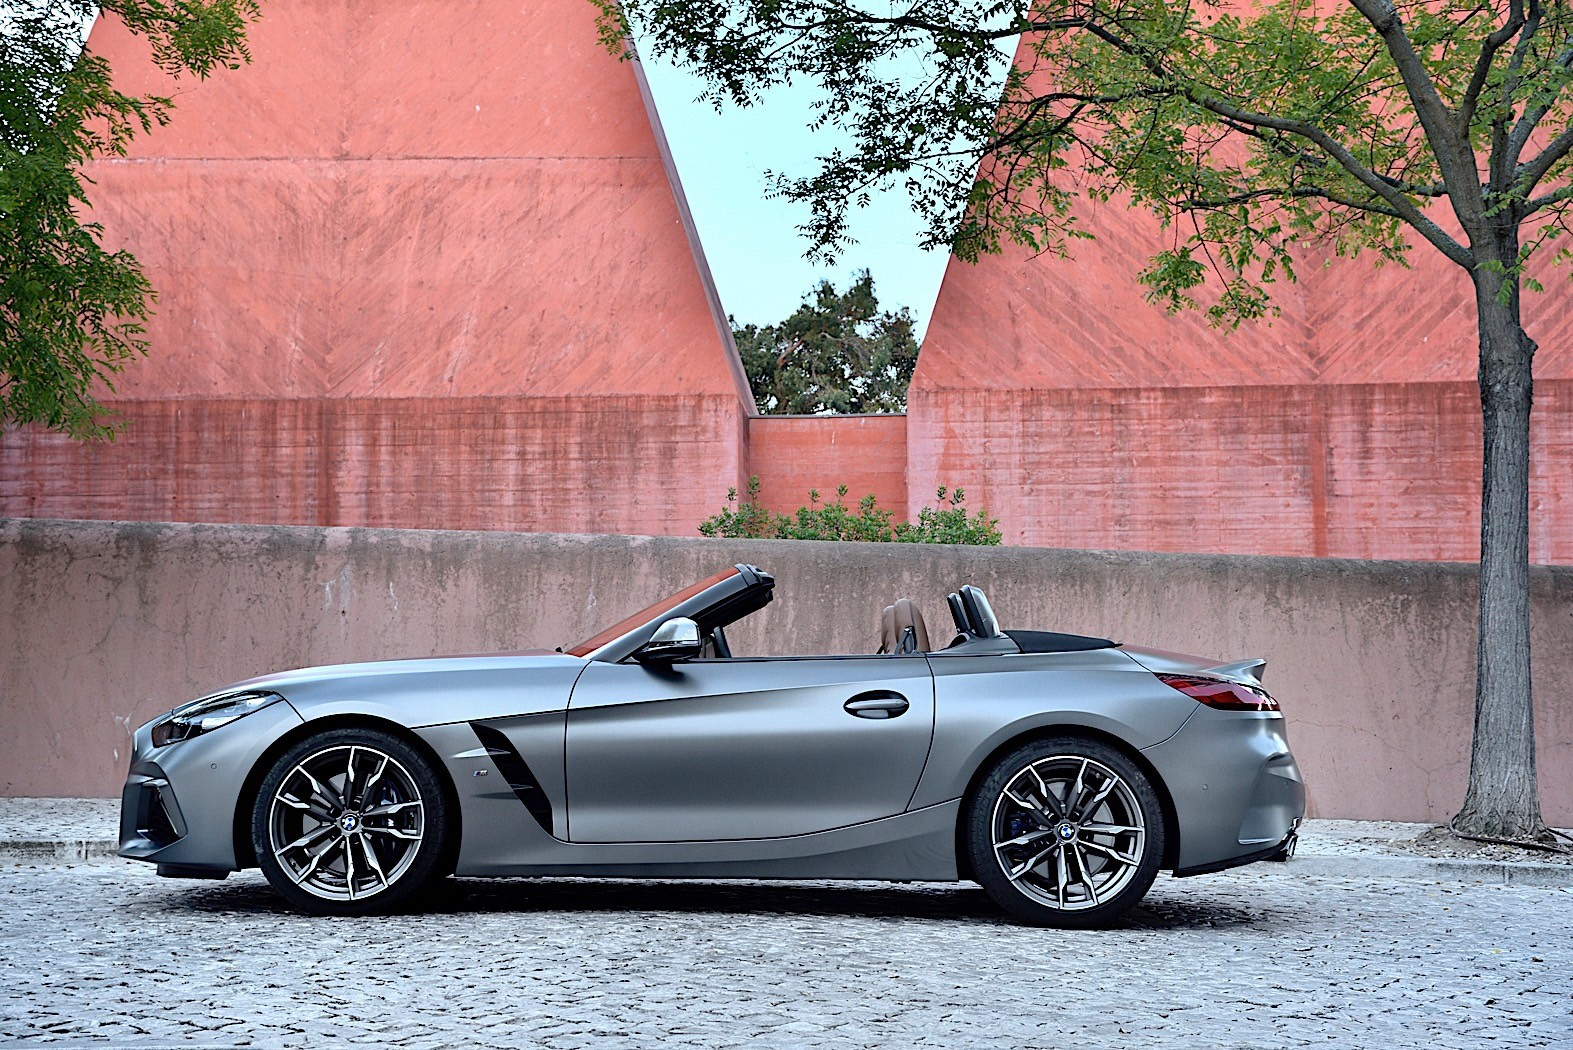 Toyota Supra With Bmw Z4 Face Is The Ultimate Unlikely